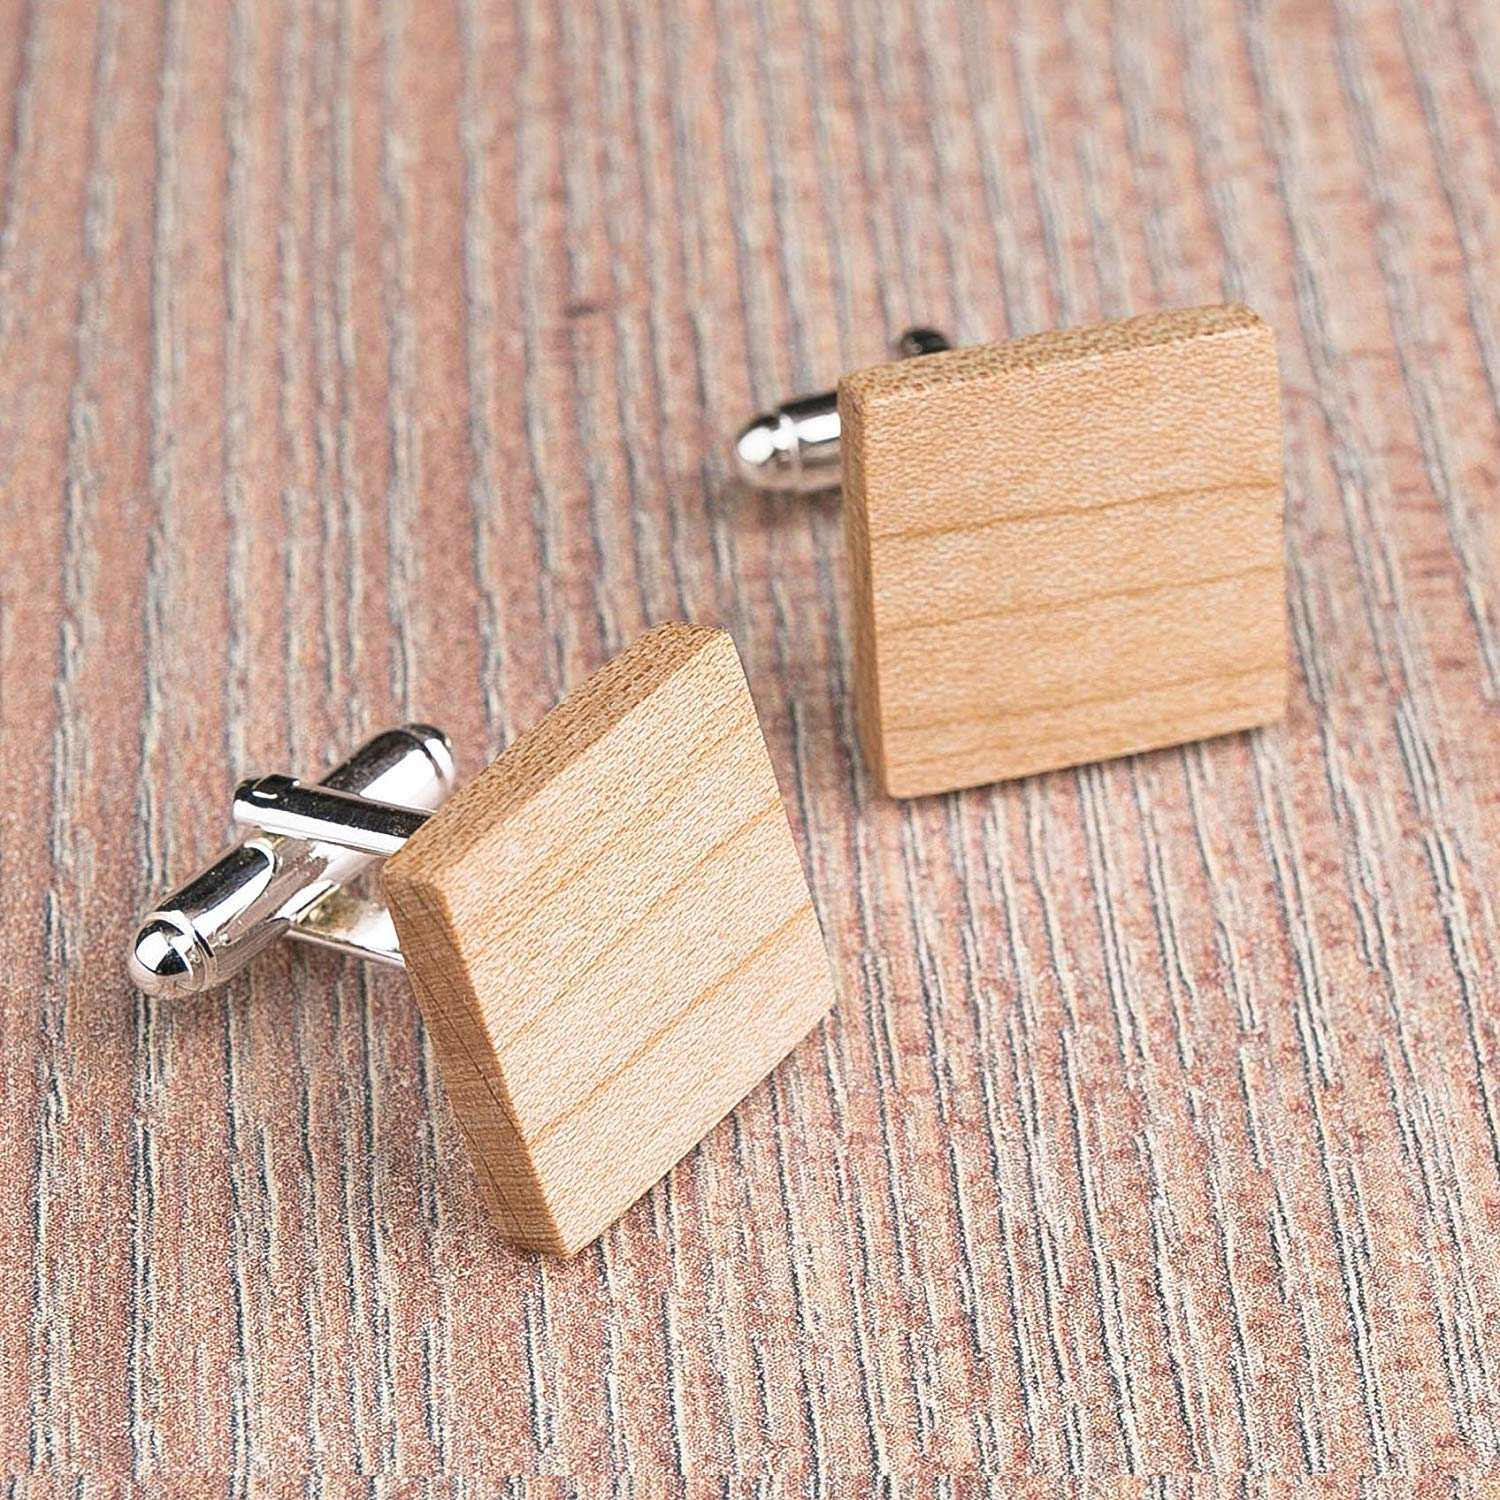 Wood cufflinks. Square cufflinks. Custom personalized initial monogram cufflinks. Natural Maple wood engraved jewelry for men. Boss present. Wedding groomsmen groom gifts